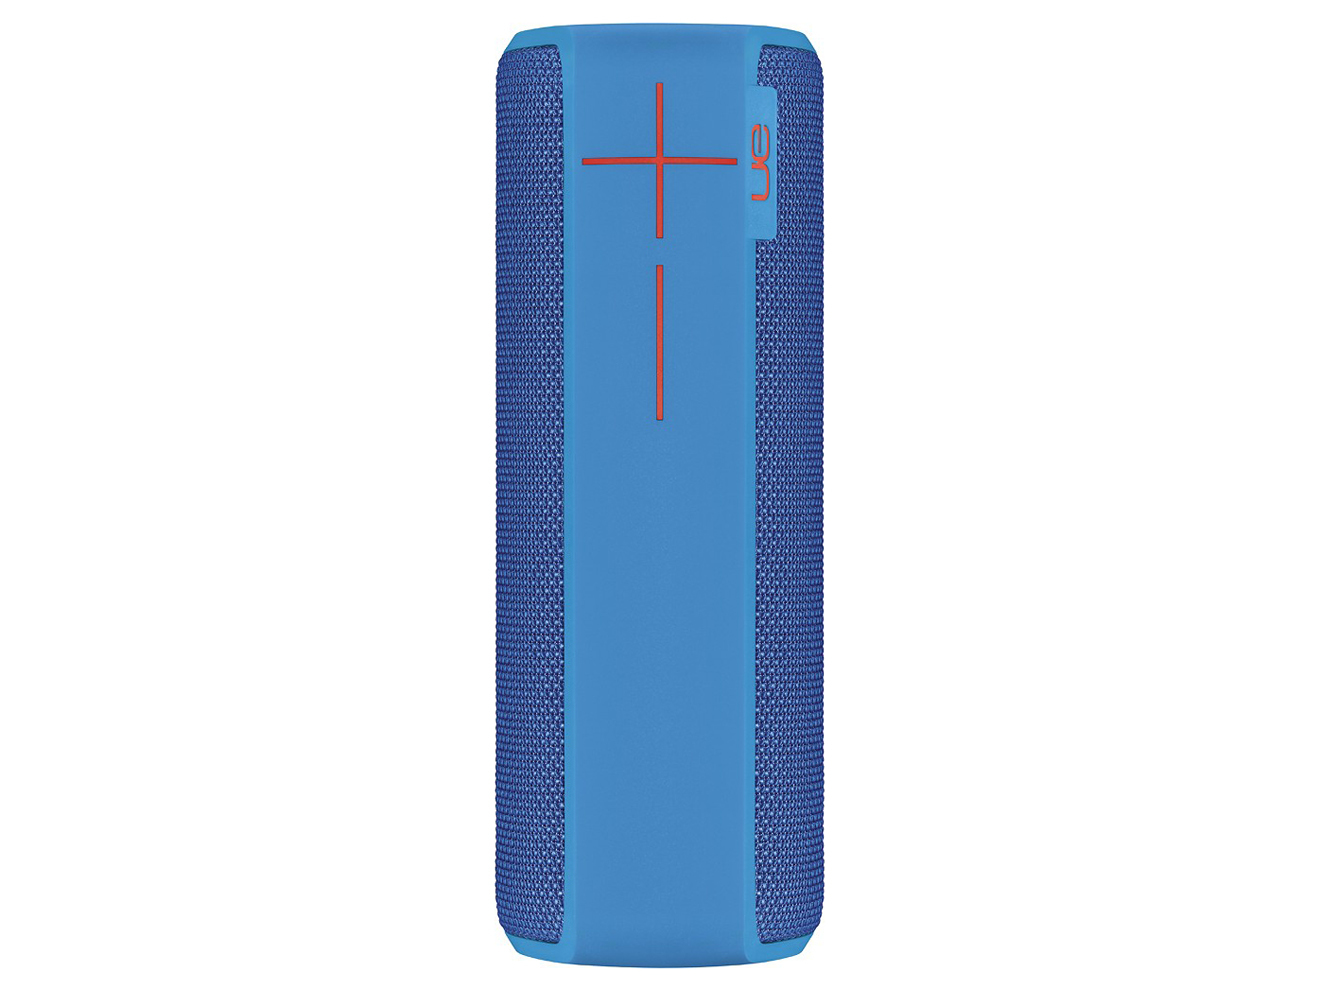 2 Best bluetooth speakers ultimateears_bestbuy